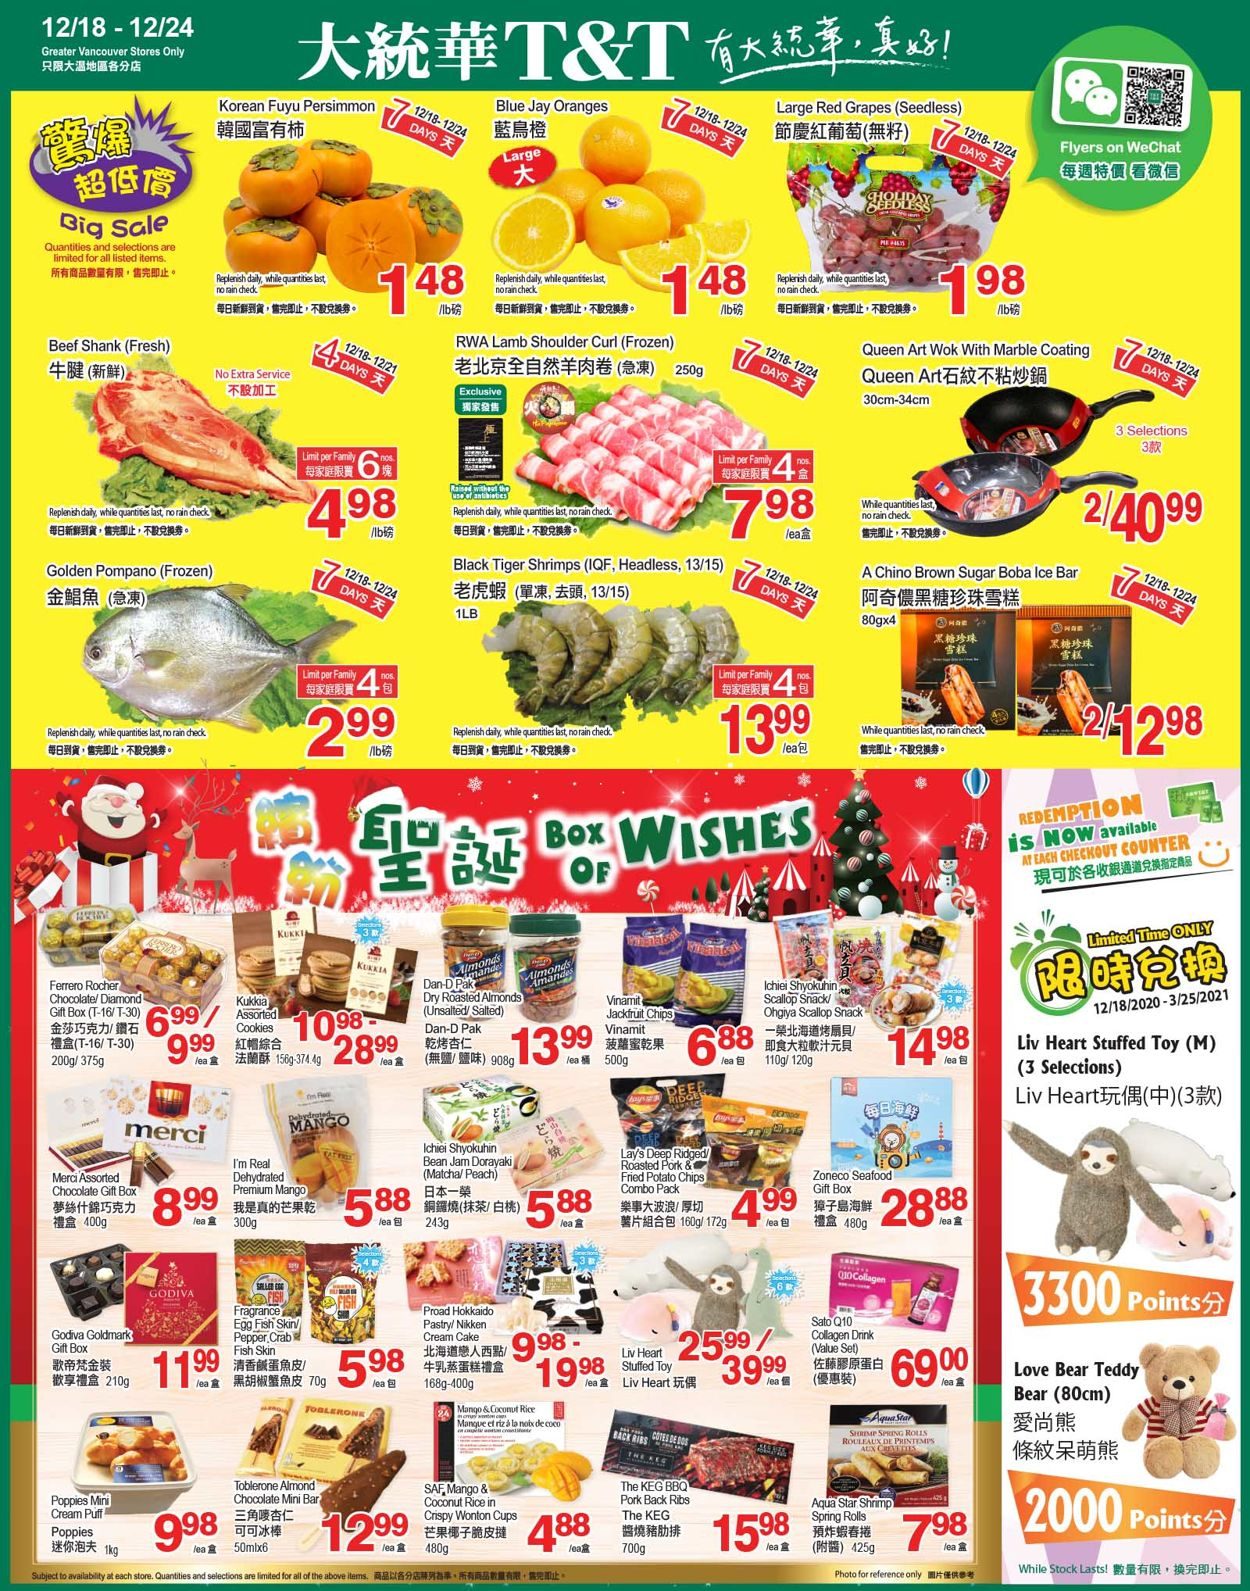 T&T Supermarket Christmas 2020 - British Columbia Flyer - 12/18-12/24/2020